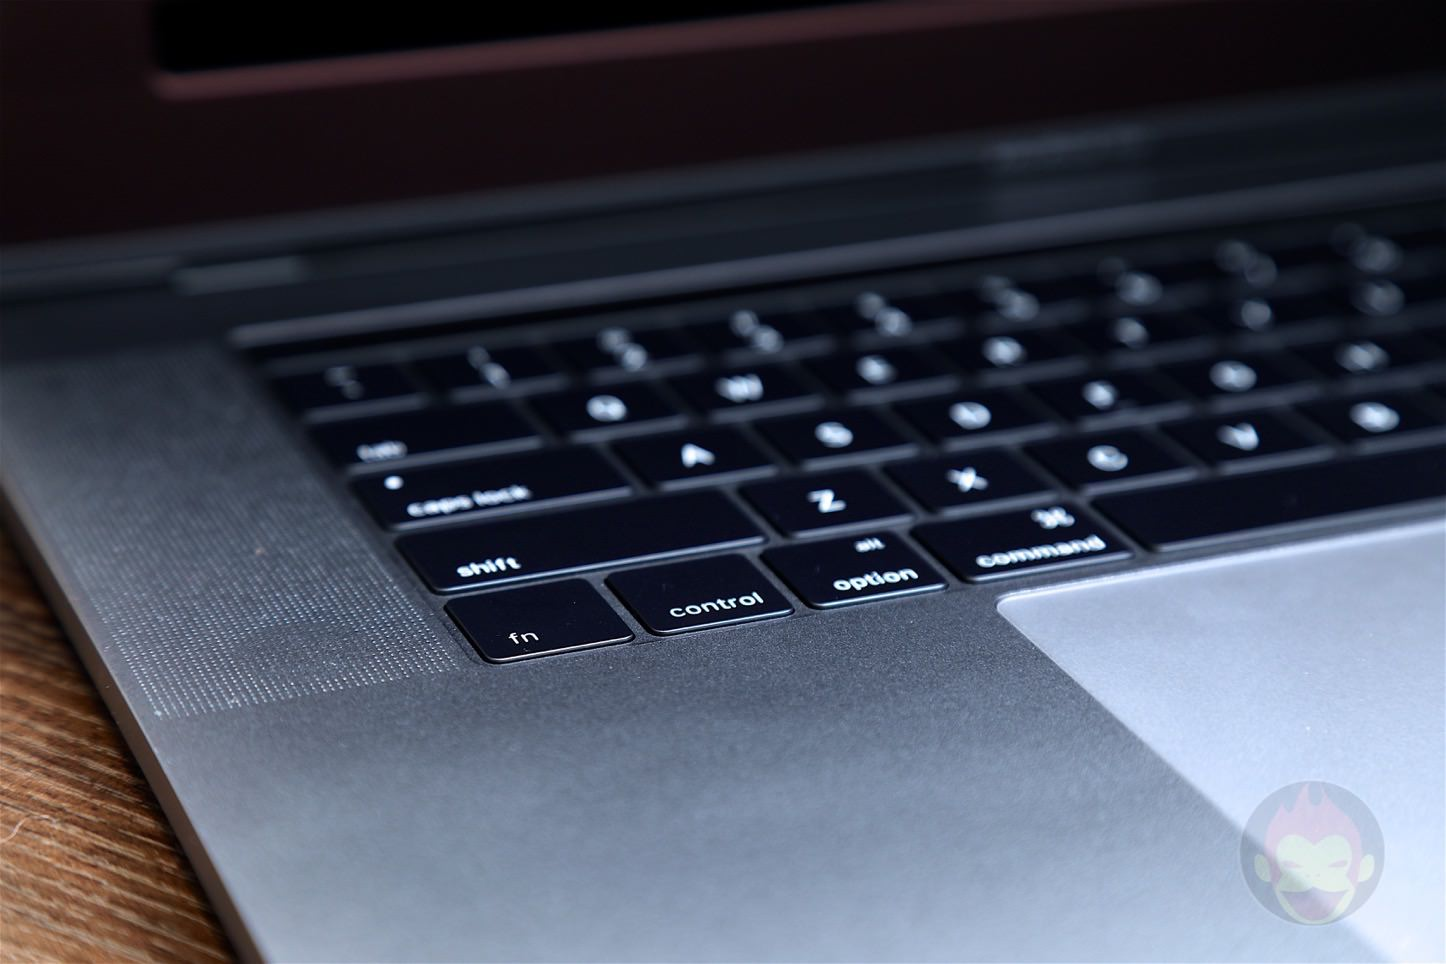 MacBook-Pro-Late-2016-15inch-model-06.jpg